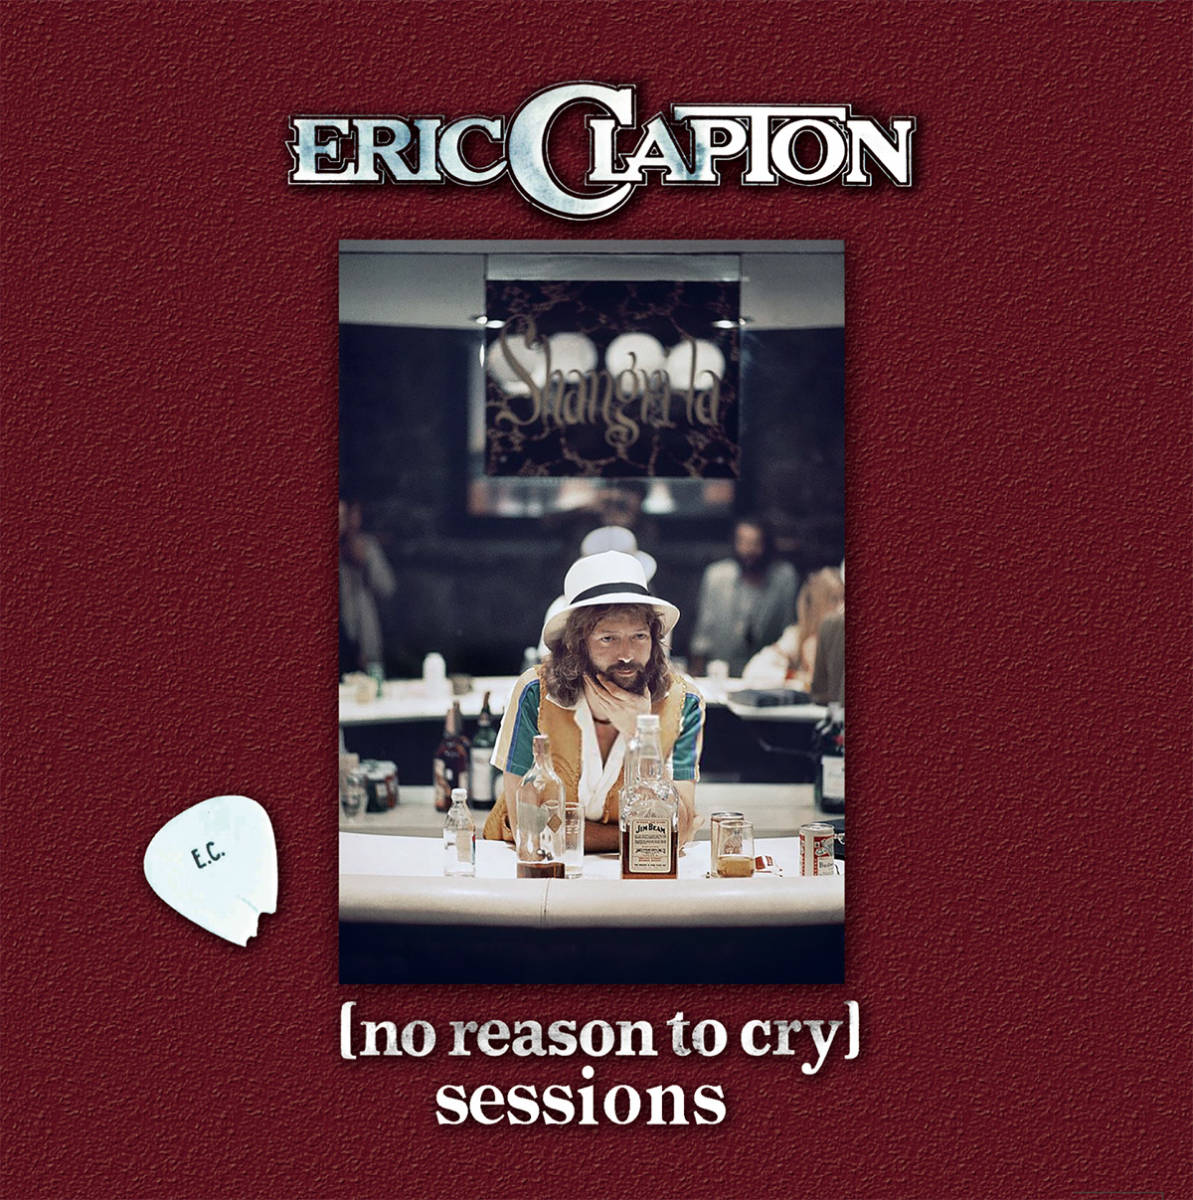 ERIC CLAPTON NO REASON TO CRY SESSIONS 【2CD】_画像3